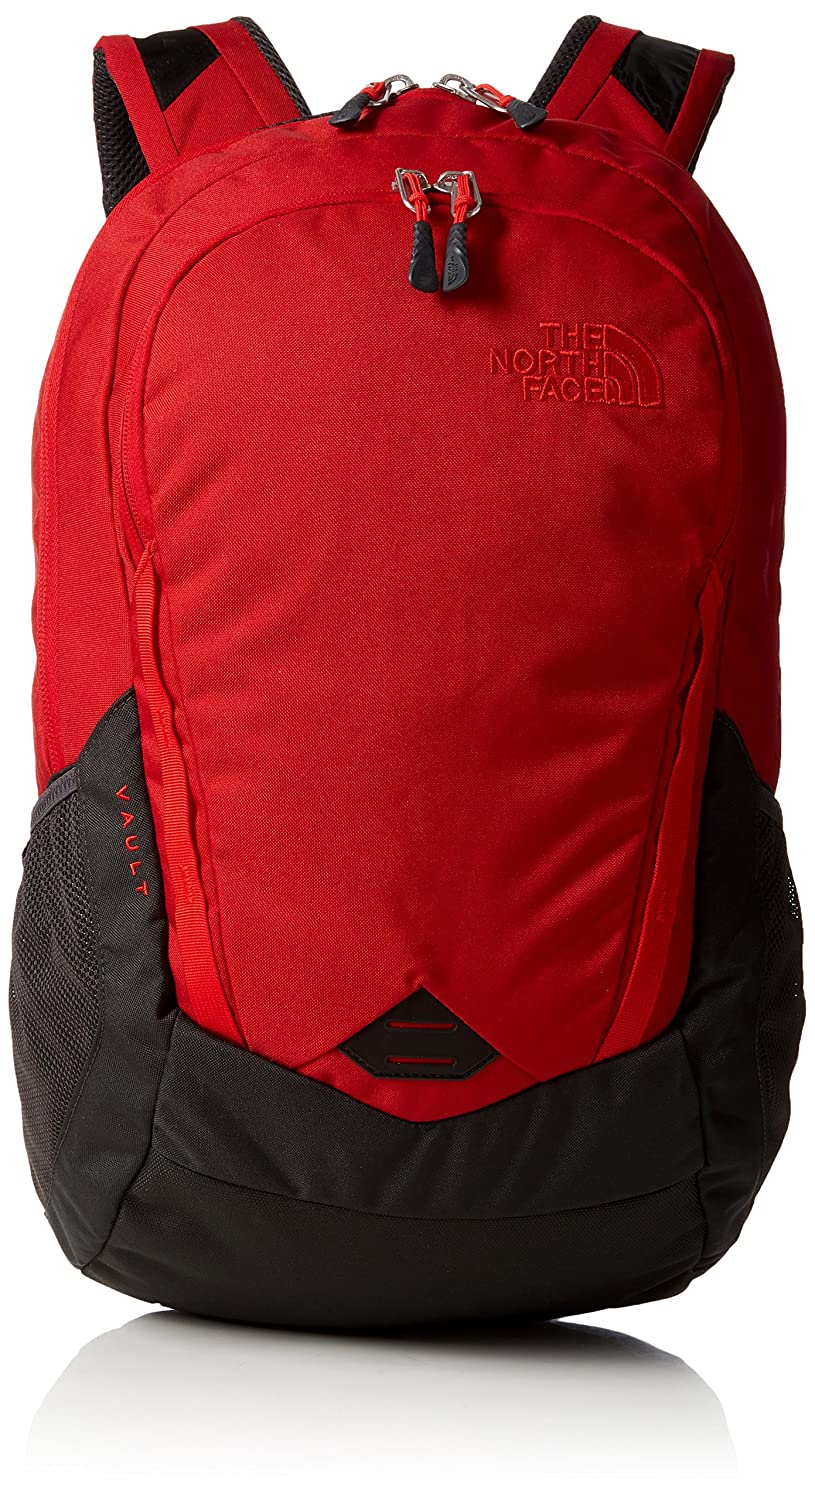 e0ff01815 THE NORTH FACE Women's Vault Backpack, Grey, One Size: Amazon.co.uk: Sports  & Outdoors